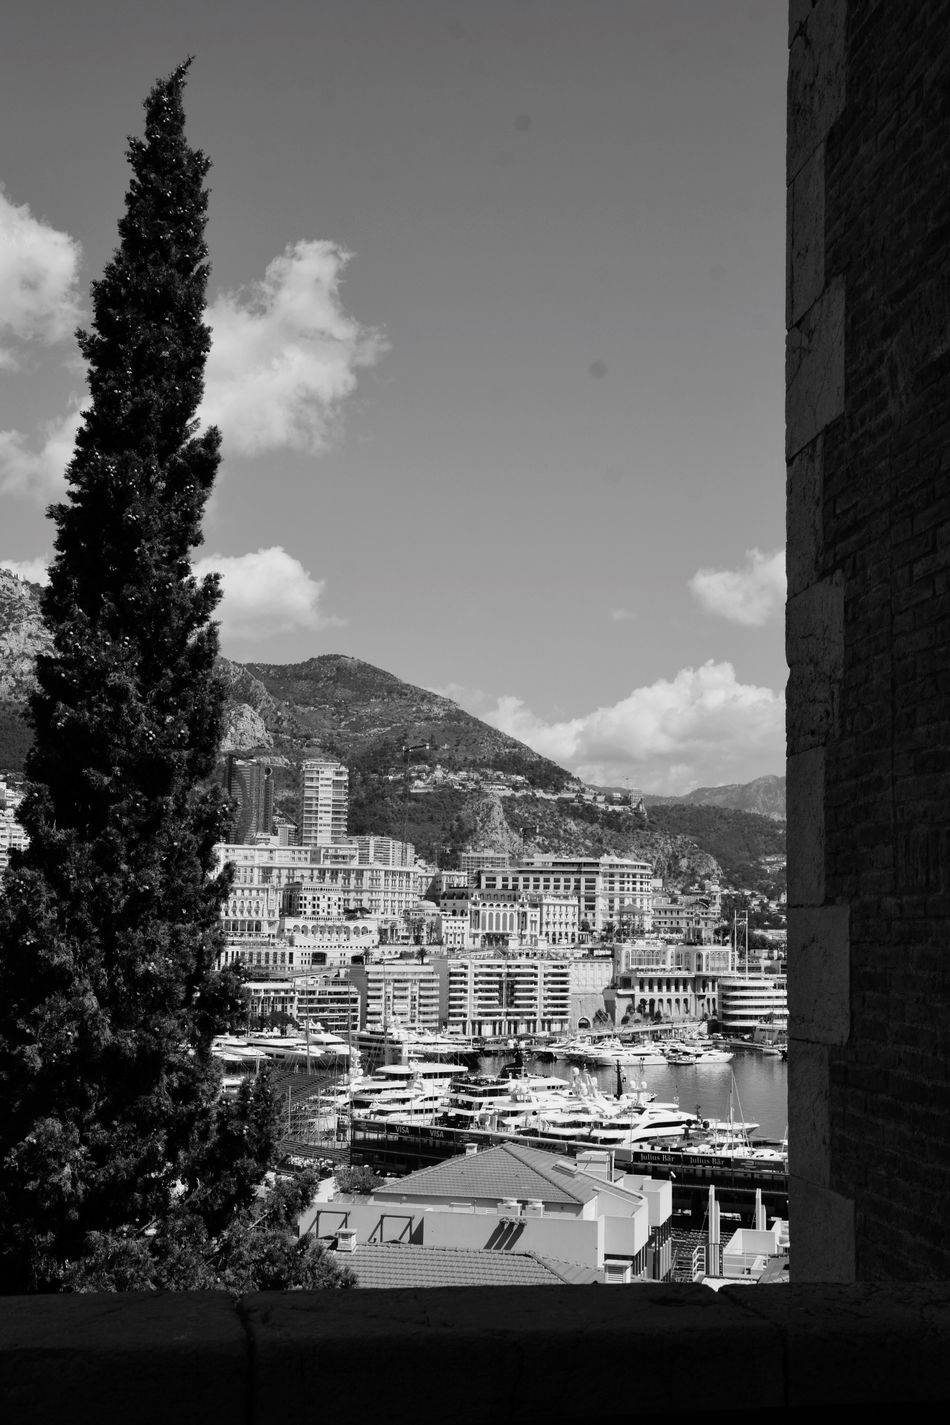 Monaco Building Exterior Architecture Sky Built Structure Mountain Day No People Outdoors Tree Nautical Vessel City Nature Cityscape Indoors  Photography Blackandwhite Photography Blackandwhite Black & White